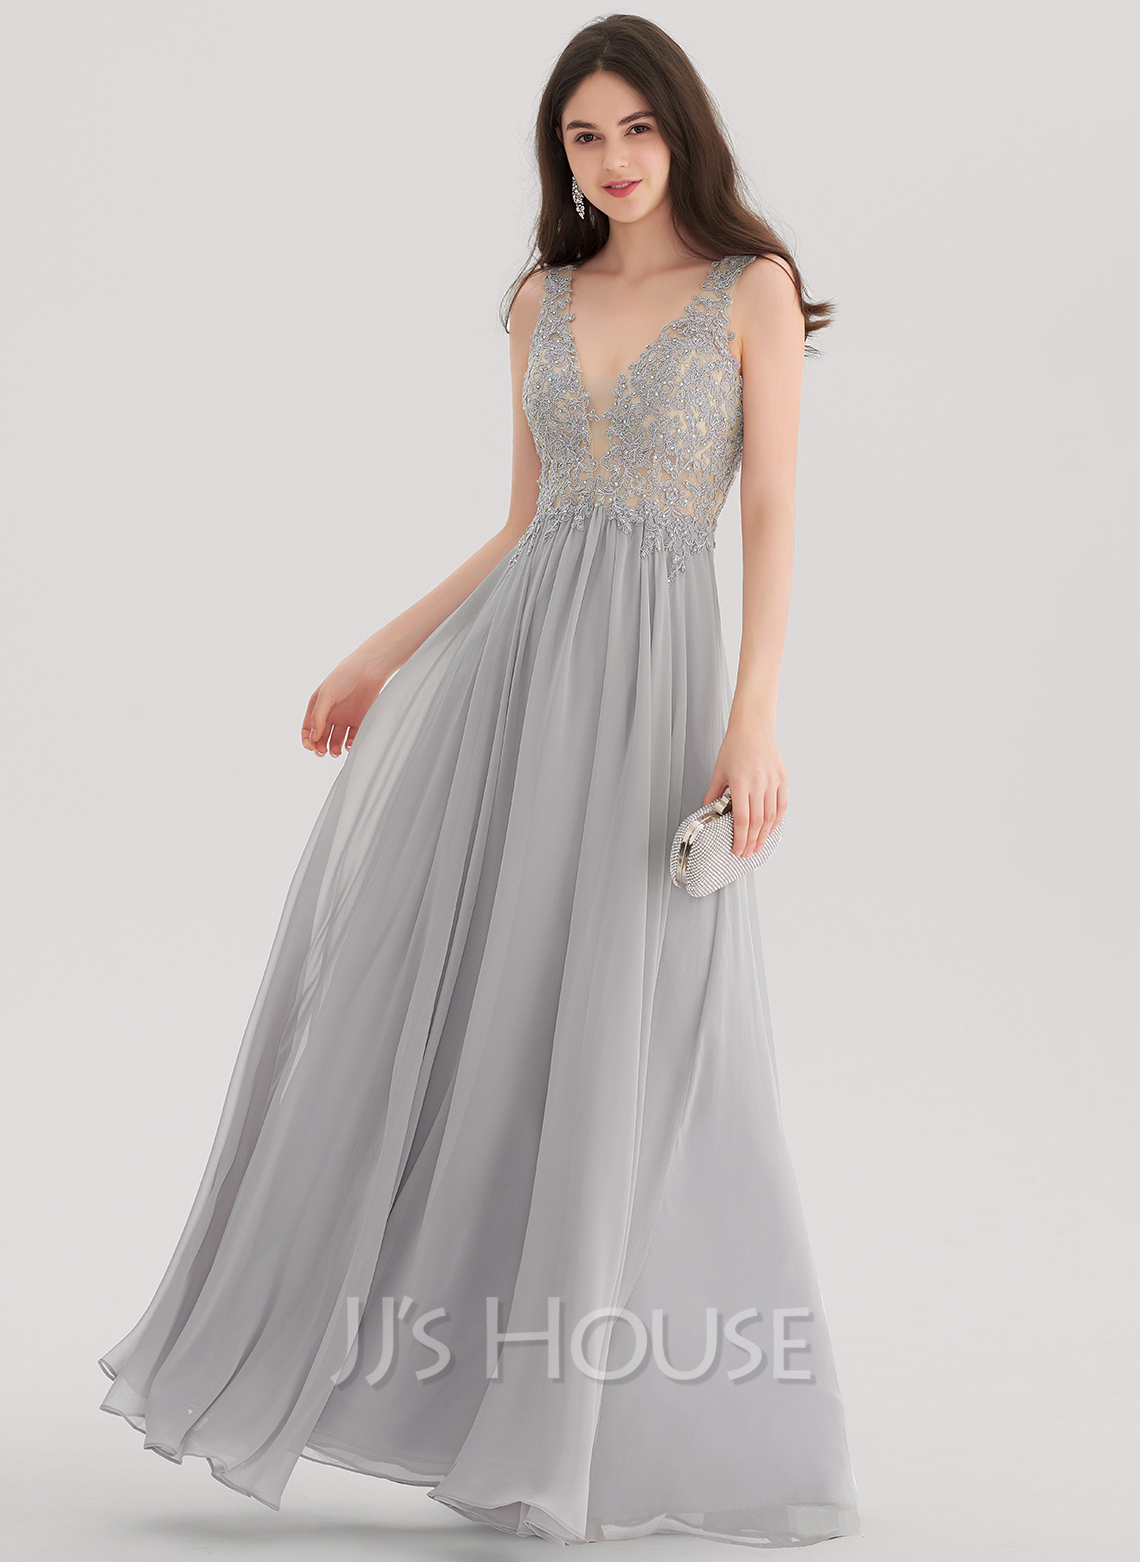 55480b3ea8 A-Line Princess V-neck Floor-Length Chiffon Prom Dresses With Beading